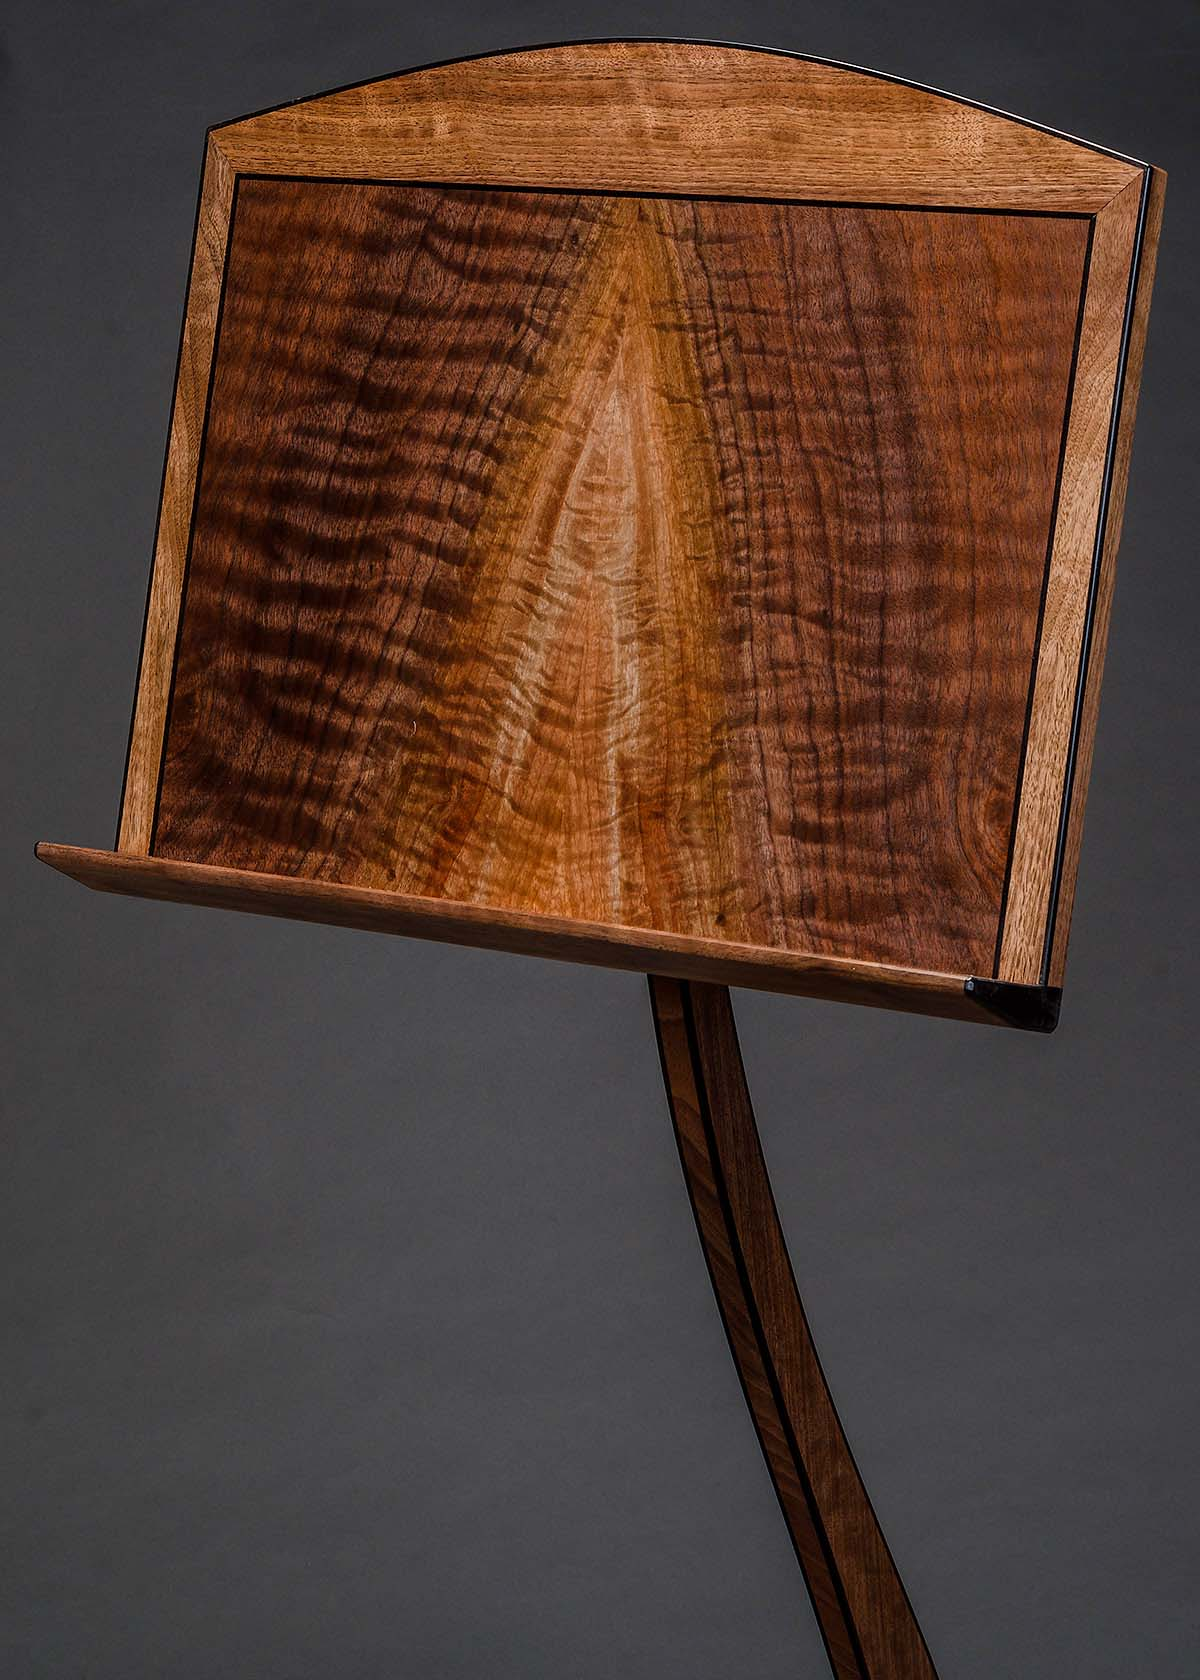 SM Guitar Stand in Claro Walnut with Ebony Binding